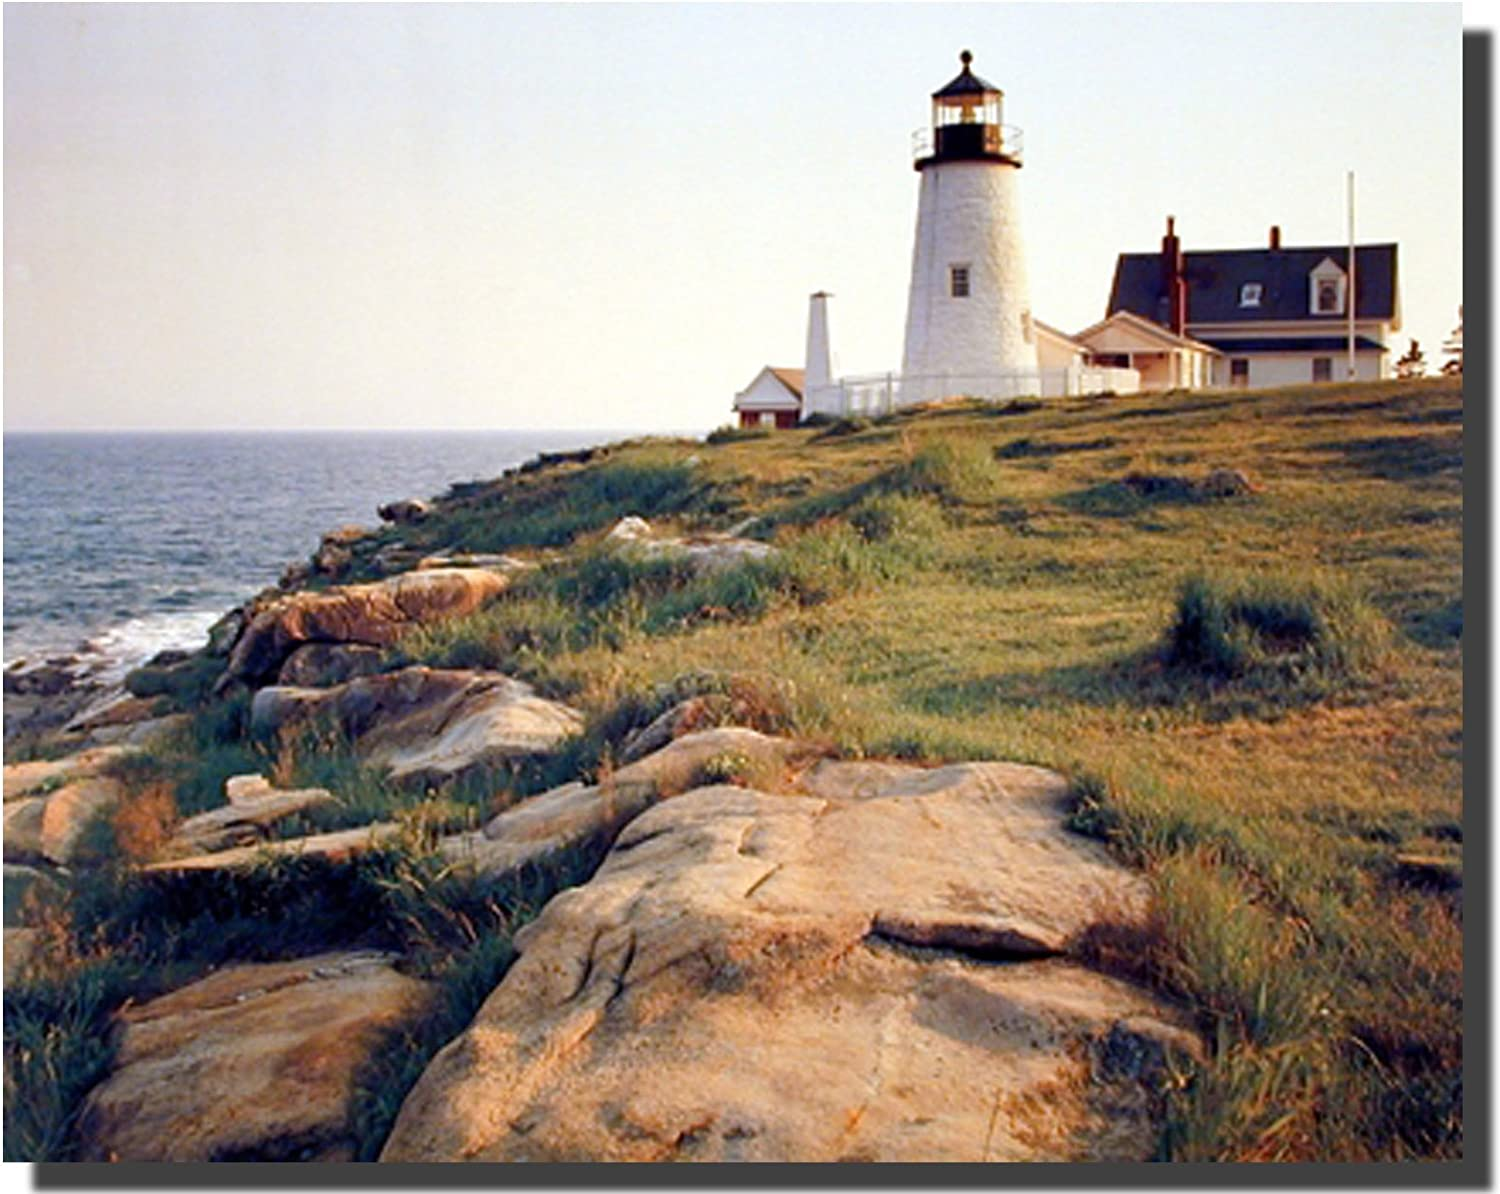 Lighthouse Pemaquid Ocean Cliff Landscape Scenery Wall Decor Art Print Poster (16x20)